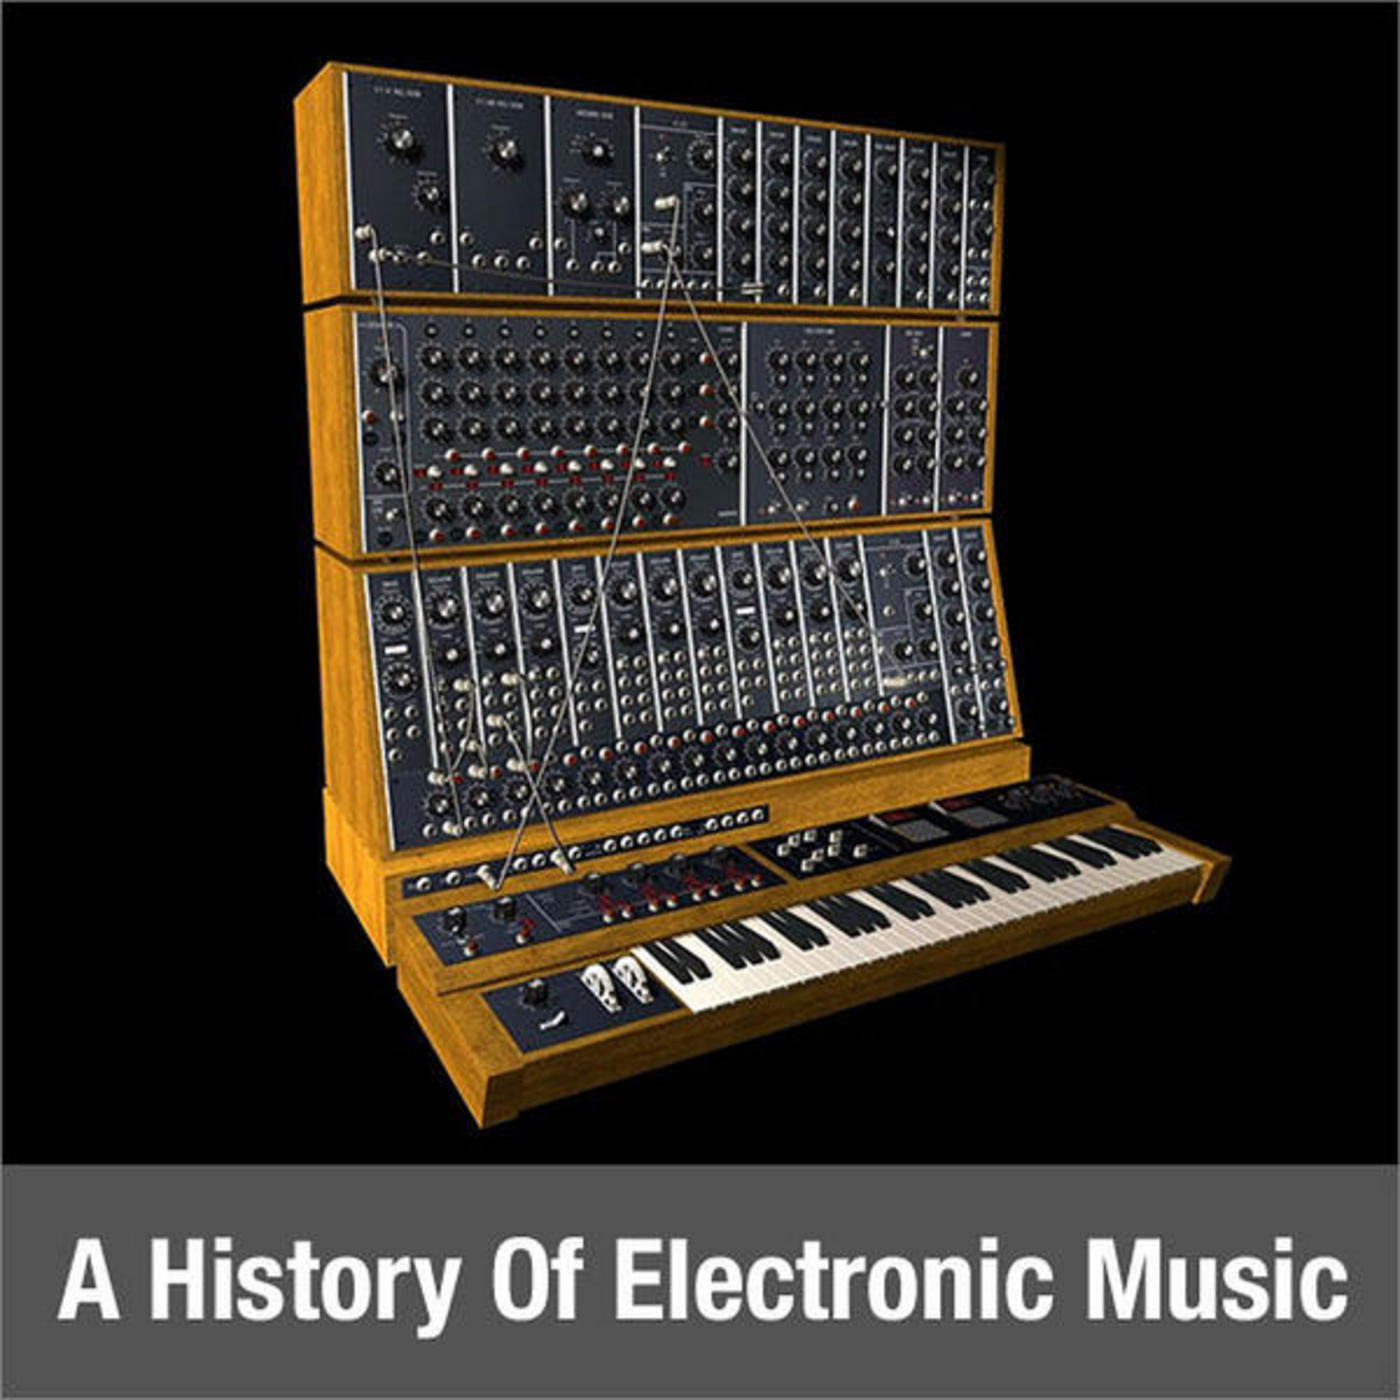 A History Of Electronic Music Part 11 - Brian Eno's Non-Ambient Works